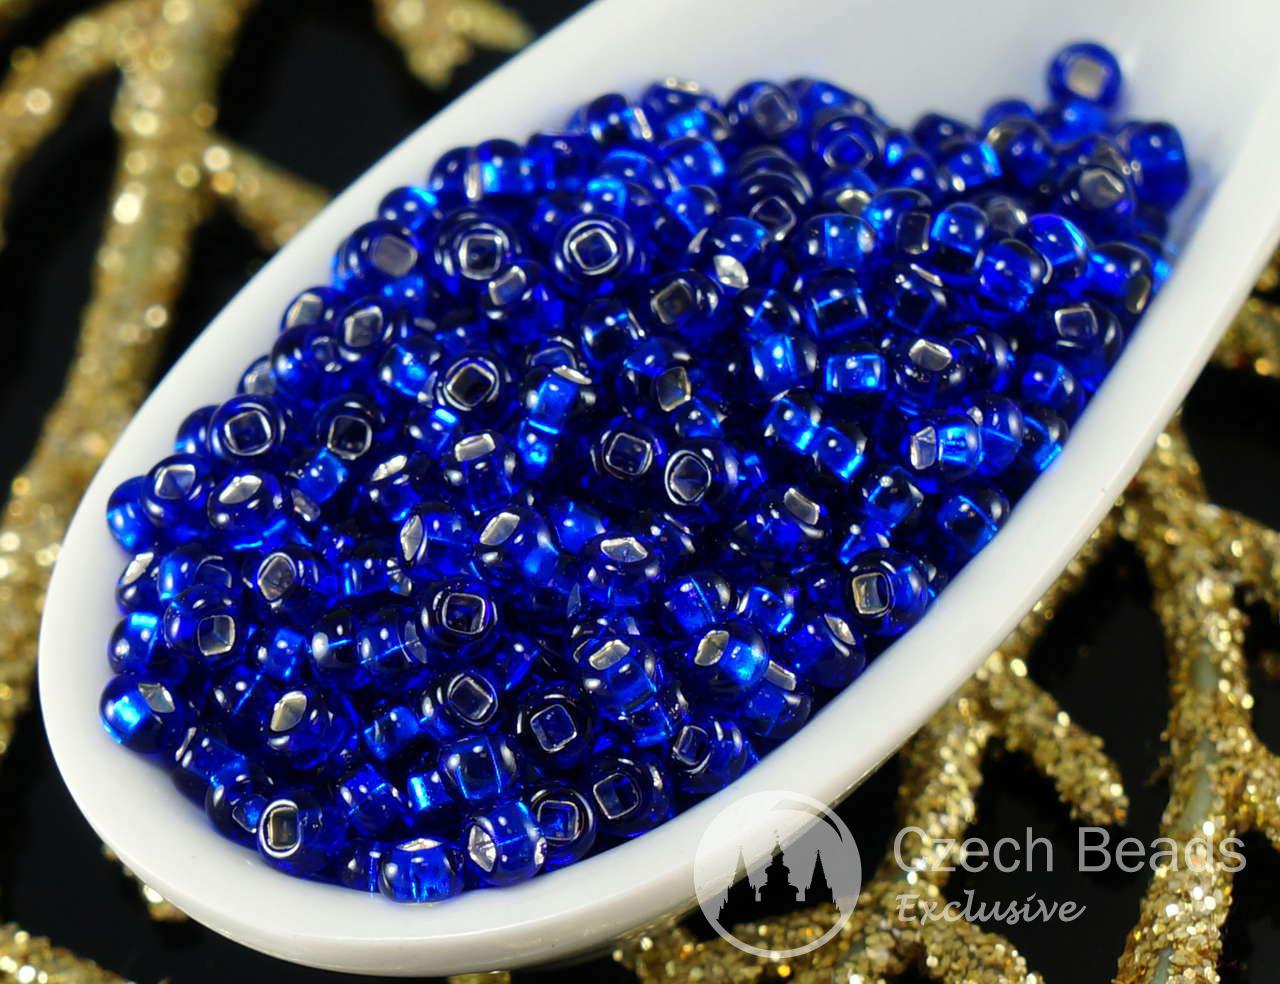 20g Blue Silver Lined Czech Glass Seed Beads 9/0 PRECIOSA Size 9 Pearls Rocaille Spacer 2.6mm for $1.81 from Czech Beads Exclusive